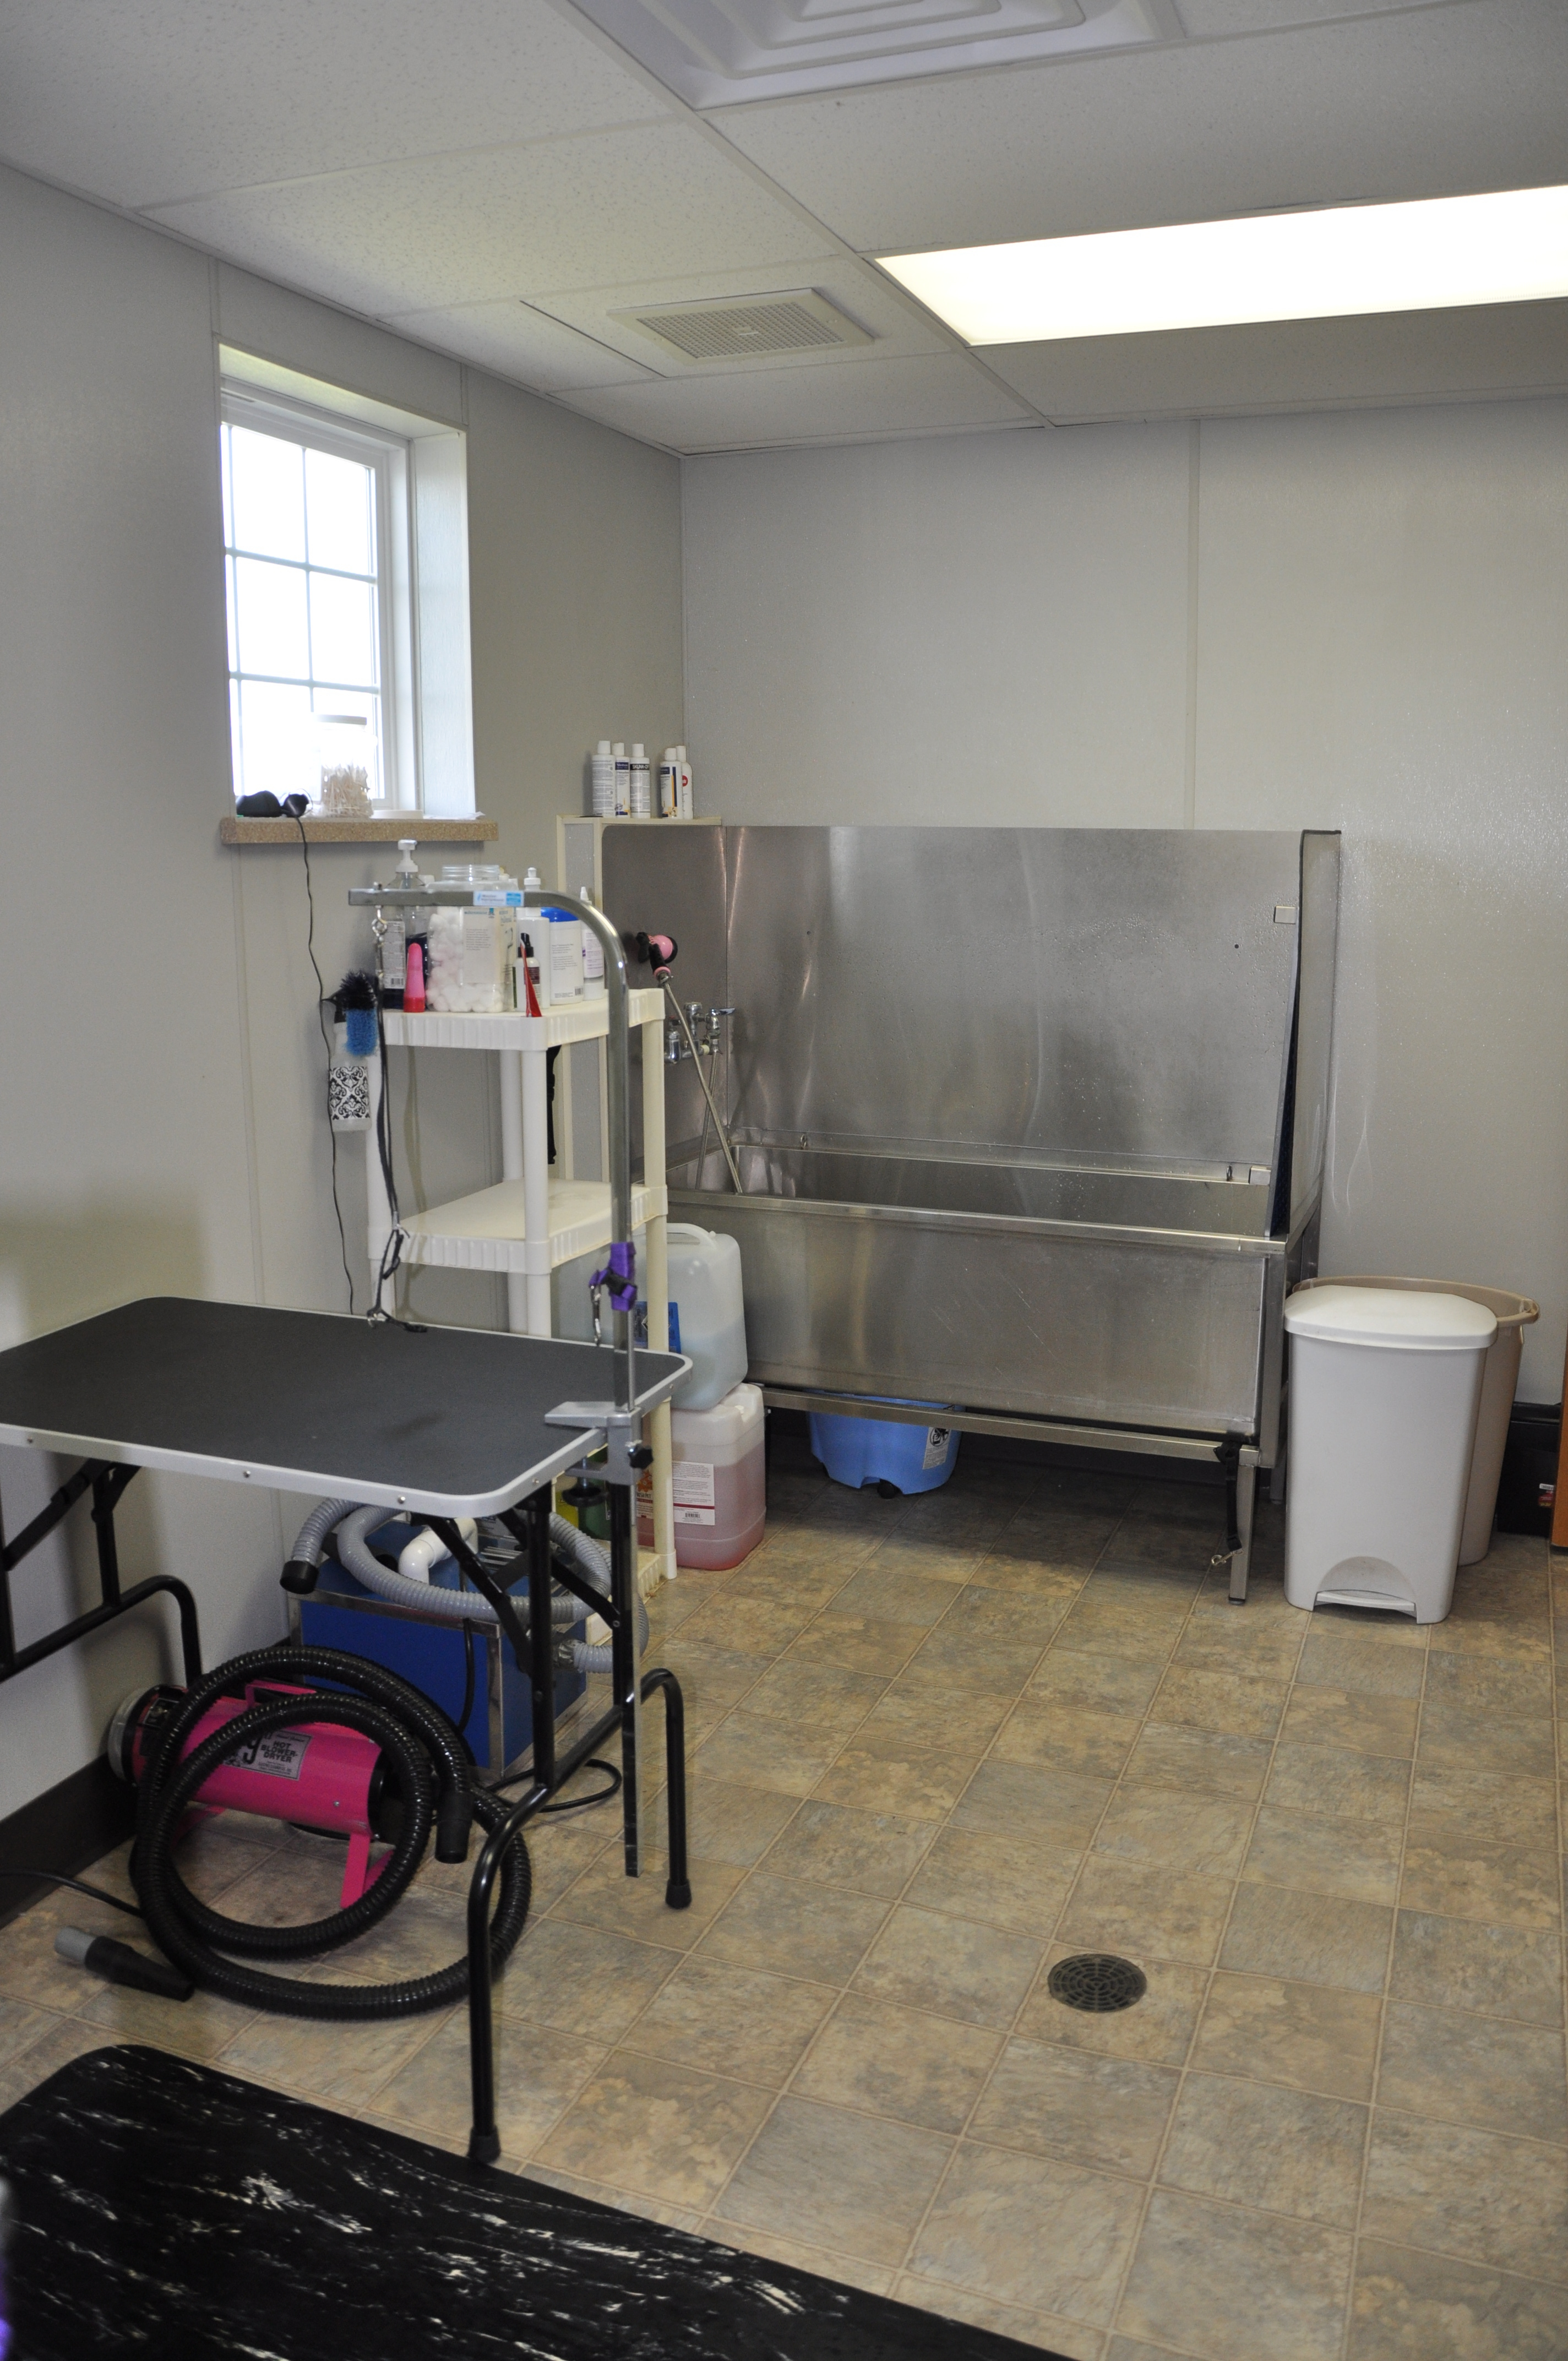 Bluffton Veterinary Hospital & Pet Care Center image 4